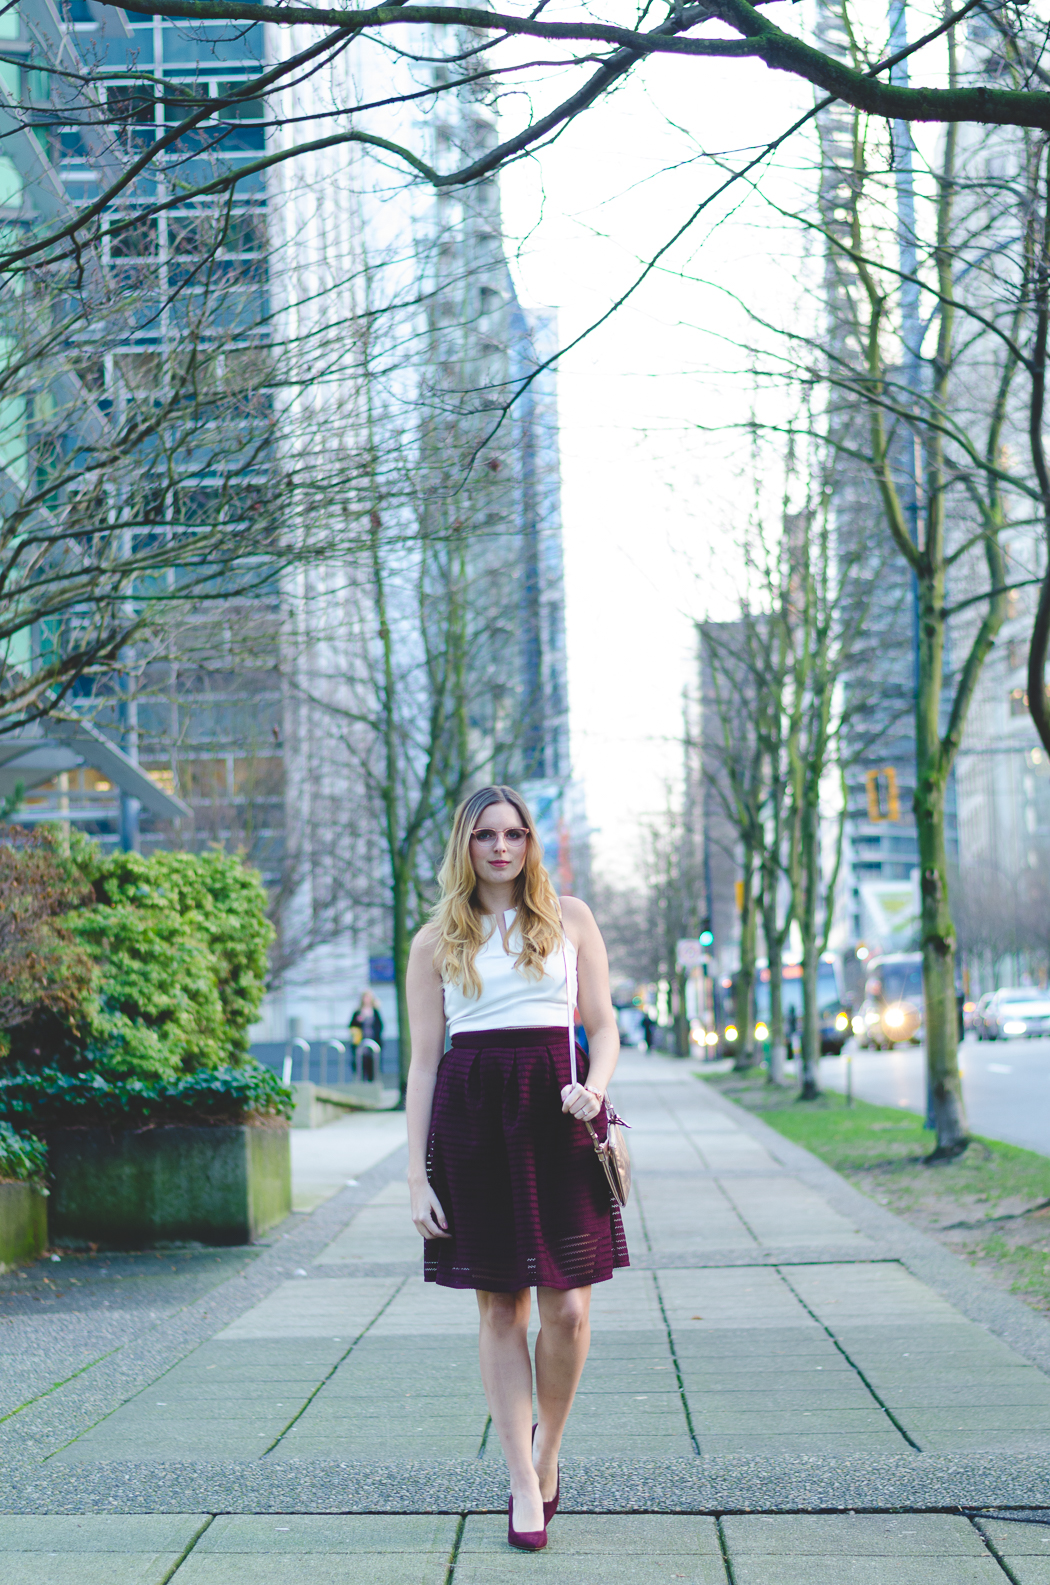 new year, new you, the urban umbrella style blog, vancouver style blog, vancouver style blogger, vancouver style bloggers, vancouver fashion blog, vancouver lifestyle blog, vancouver health blog, vancouver fitness blog, vancouver travel blog, canadian fashion blog, canadian style blog, canadian lifestyle blog, canadian health blog, canadian fitness blog, canadian travel blog, west coast style, bree aylwin, new years eve style, holiday style, chic office outfit, how to style a crop top, how to style a midi skirt, forever 21 outfit, best beauty blog, best beauty blogger, best travel blogs, top vancouver fashion bloggers, top fashion blogs, best style blogs 2015, popular fashion blogs, top style blogs, top lifestyle blogs, top fitness blogs, top health blogs, top travel blogs